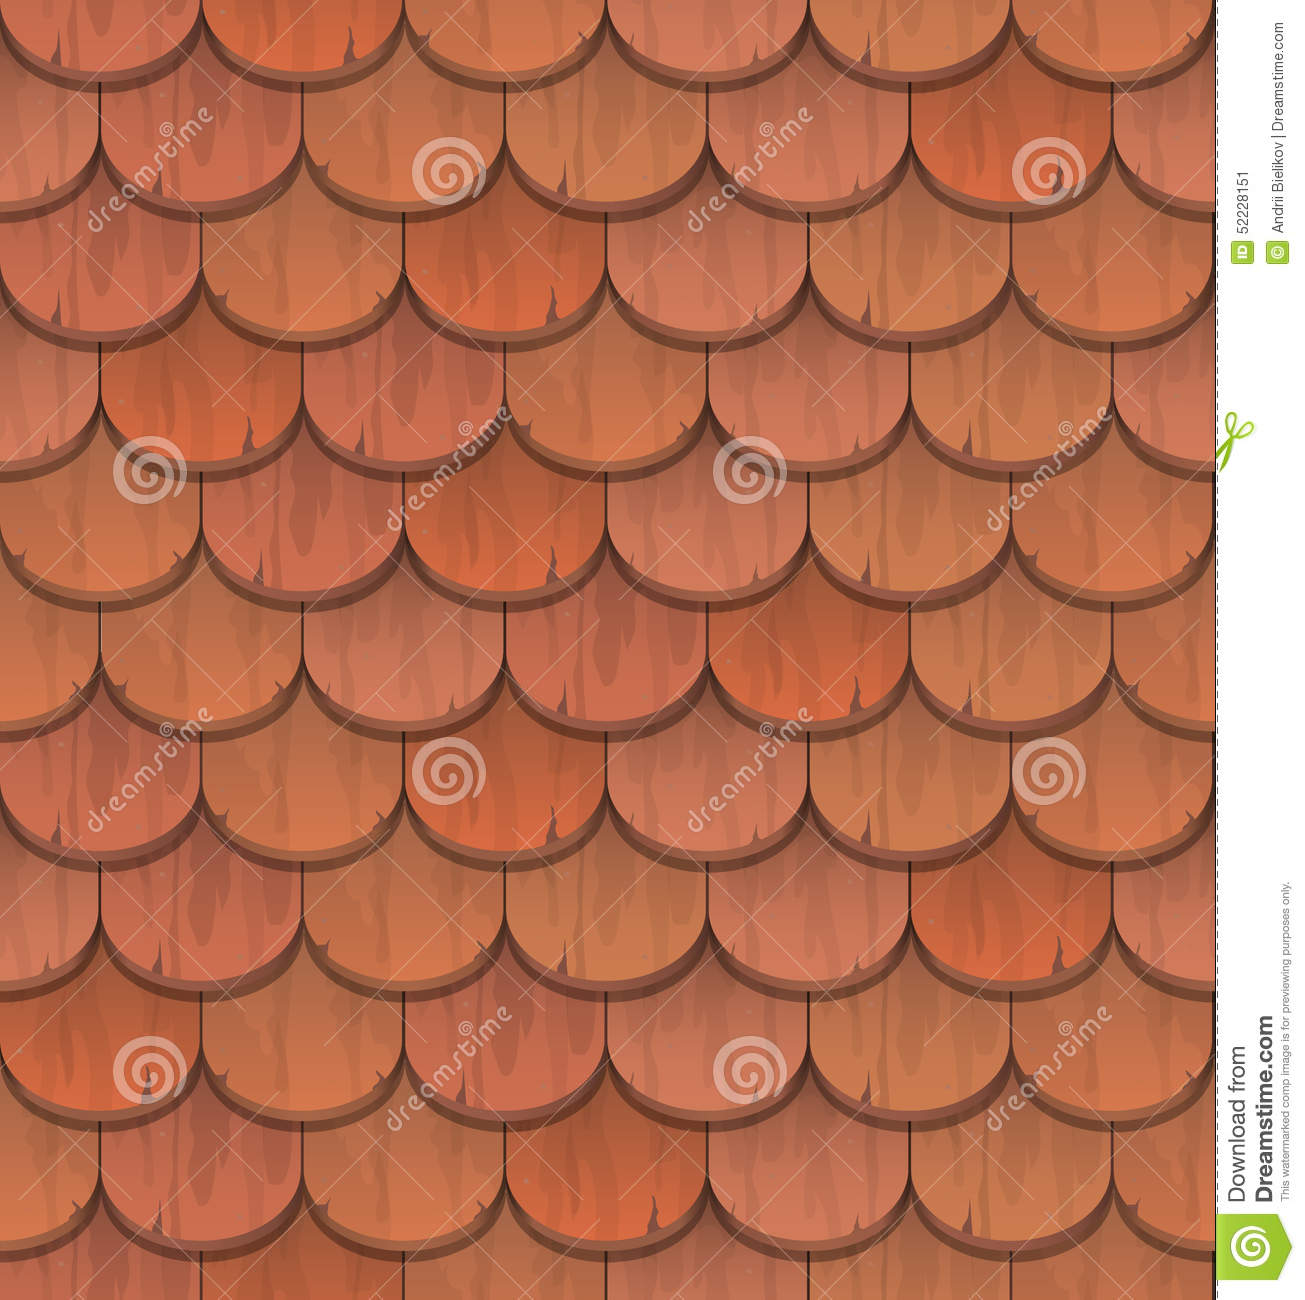 Red clay roof tiles stock vector image 52228151 for Roof tile patterns